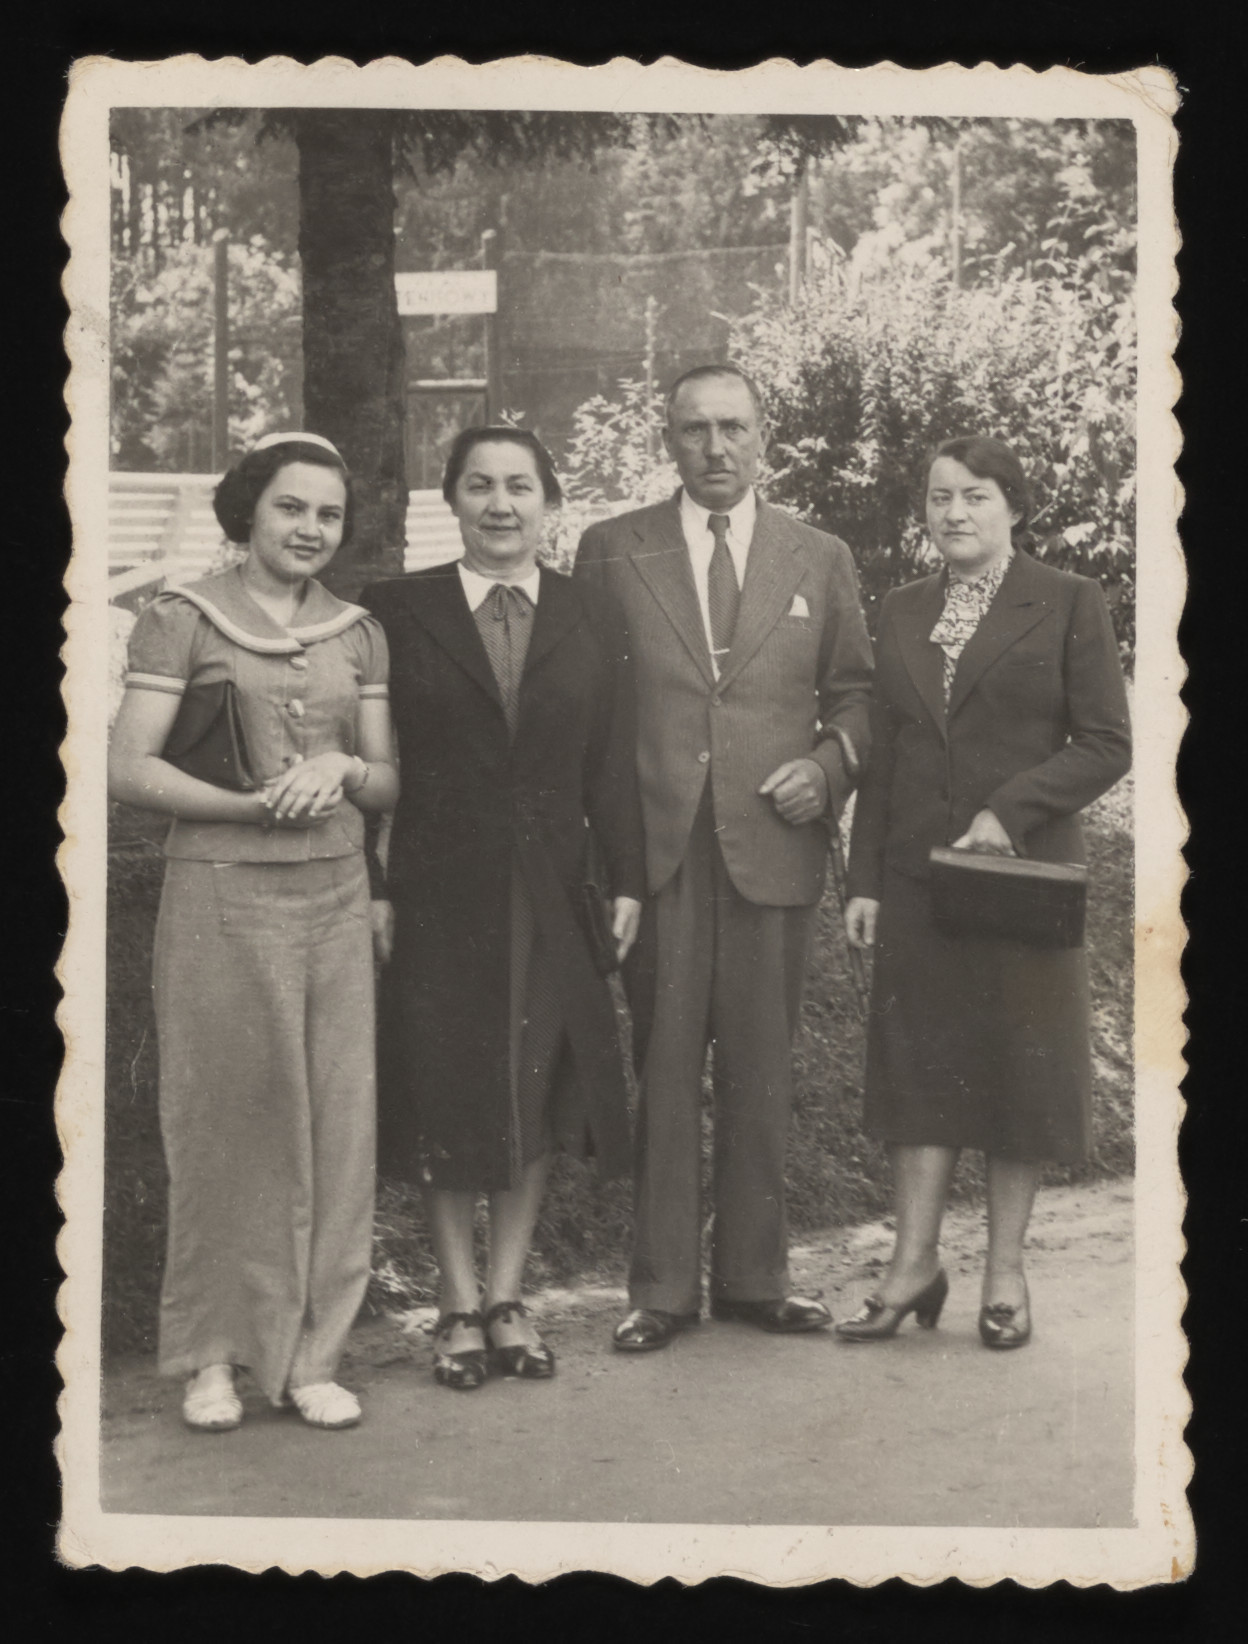 Gina Tabaczynska (left) poses with her parents and aunt, Hala (Szczecinska) Tabaczynska (right), during a vacation in the resort town of Truskawiec.    Hala survived the war, but her two children, Inka and Mietek, perished in Chelmno.